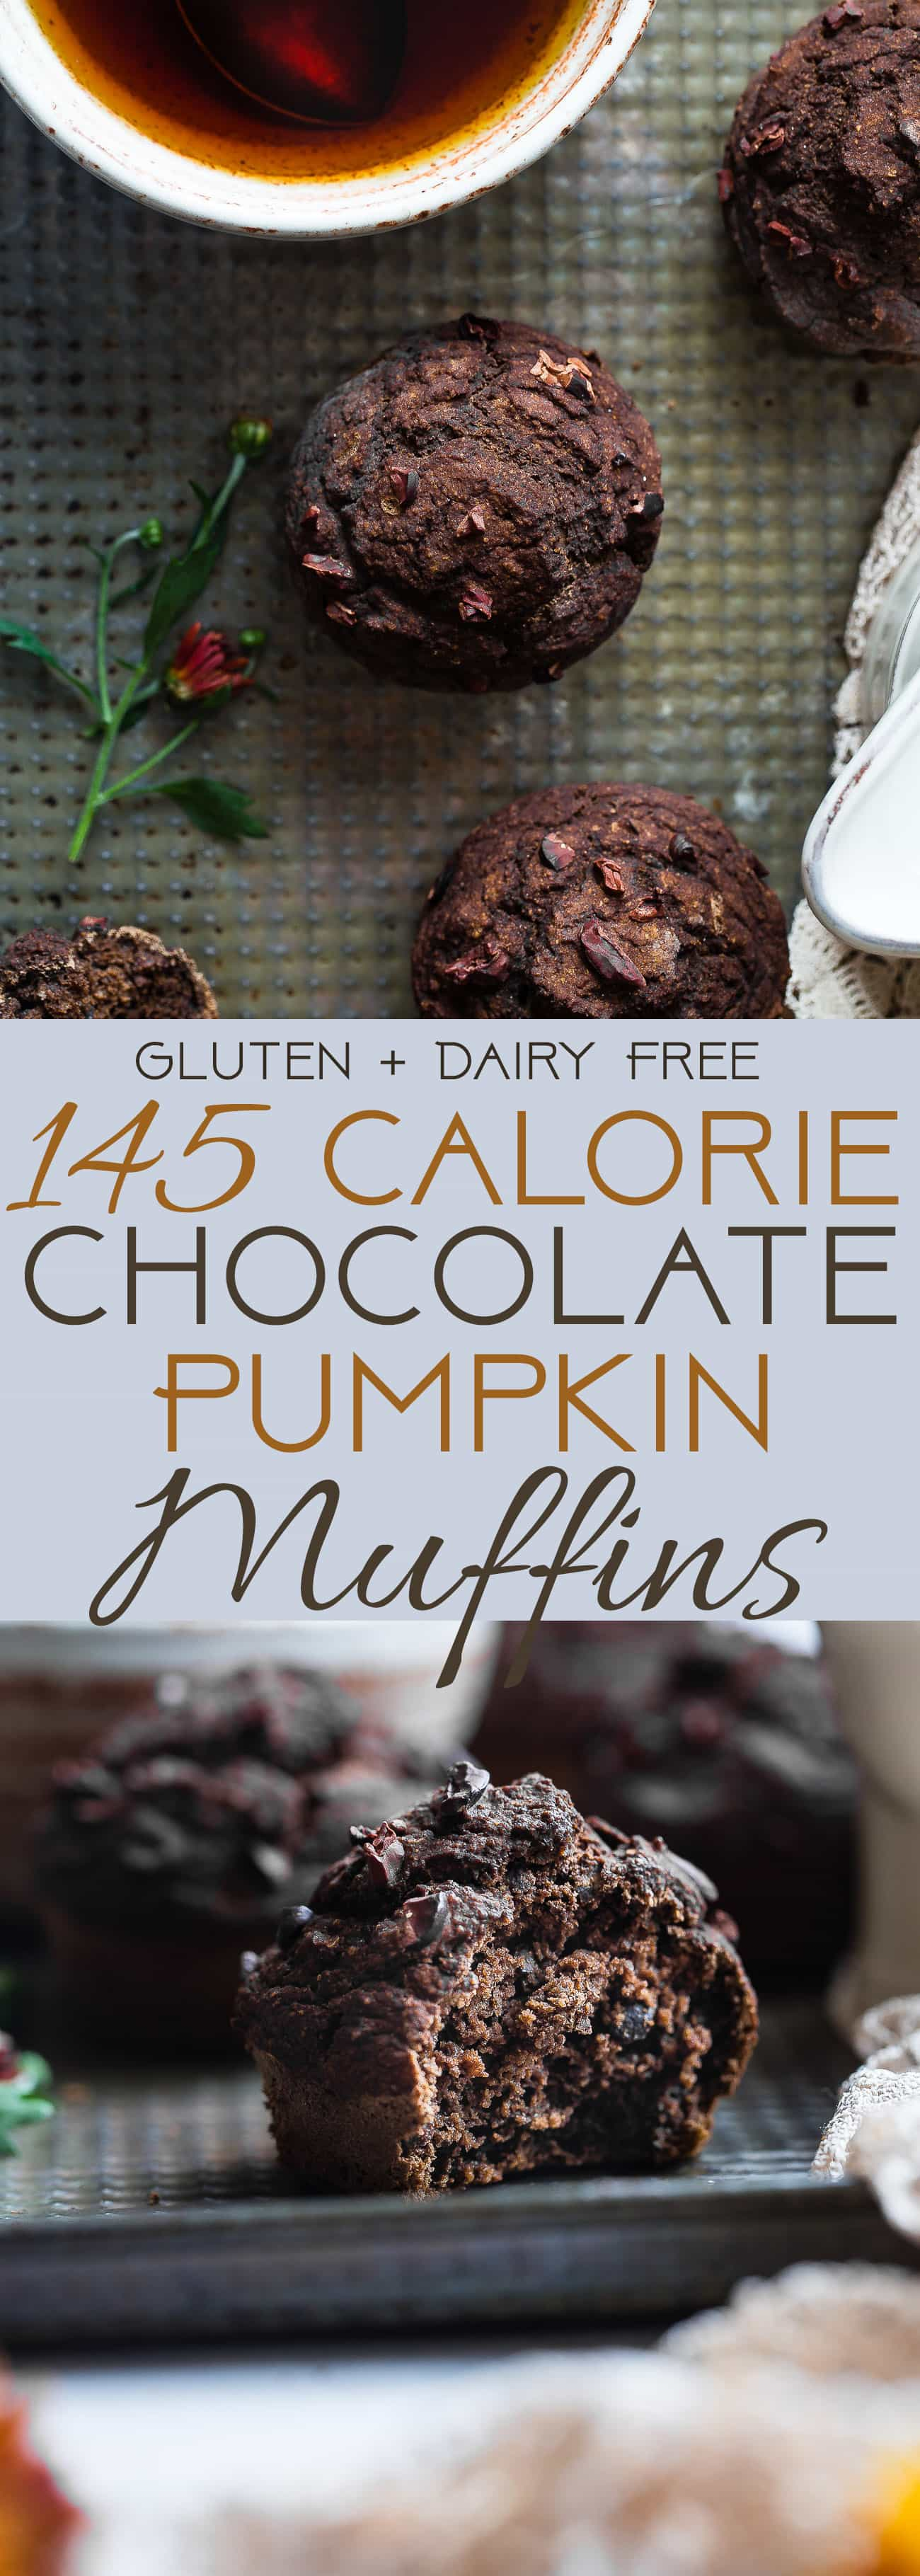 Healthy Gluten Free Chocolate Pumpkin Muffins - SO moist and chewy! Made with whole grains, dairy free, low fat, only 145 calories!  Perfect for breakfast or snack and kid friendly too! | Foodfaithfitness.com | @FoodFaitFit | healthy chocolate muffins. healthy pumpkin muffins. easy pumpkin muffins. sugar free muffins. gluten free pumpkin muffins. gluten free chocolate muffins. low fat muffins.